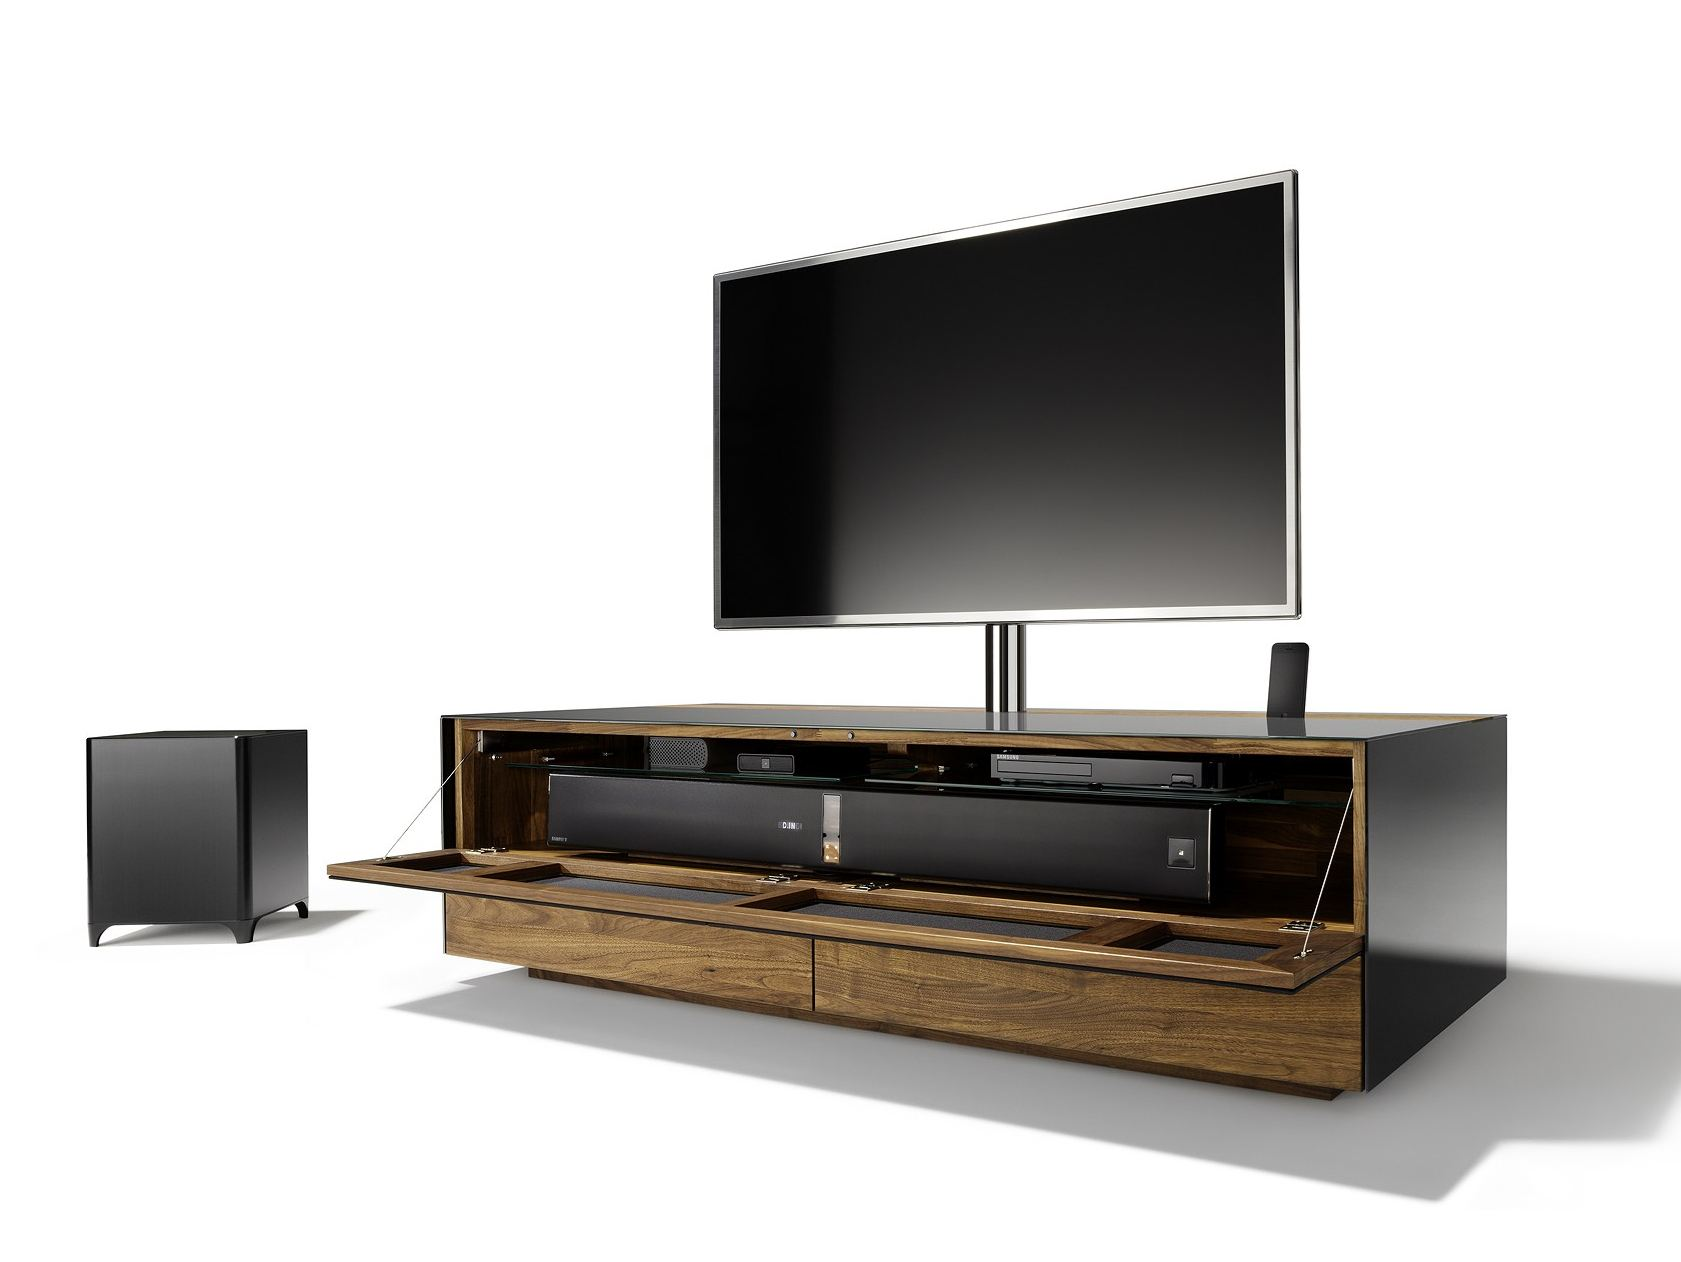 tv m bel aus holz cubus pure tv lowboard kollektion cubus pure by team 7 nat rlich wohnen. Black Bedroom Furniture Sets. Home Design Ideas